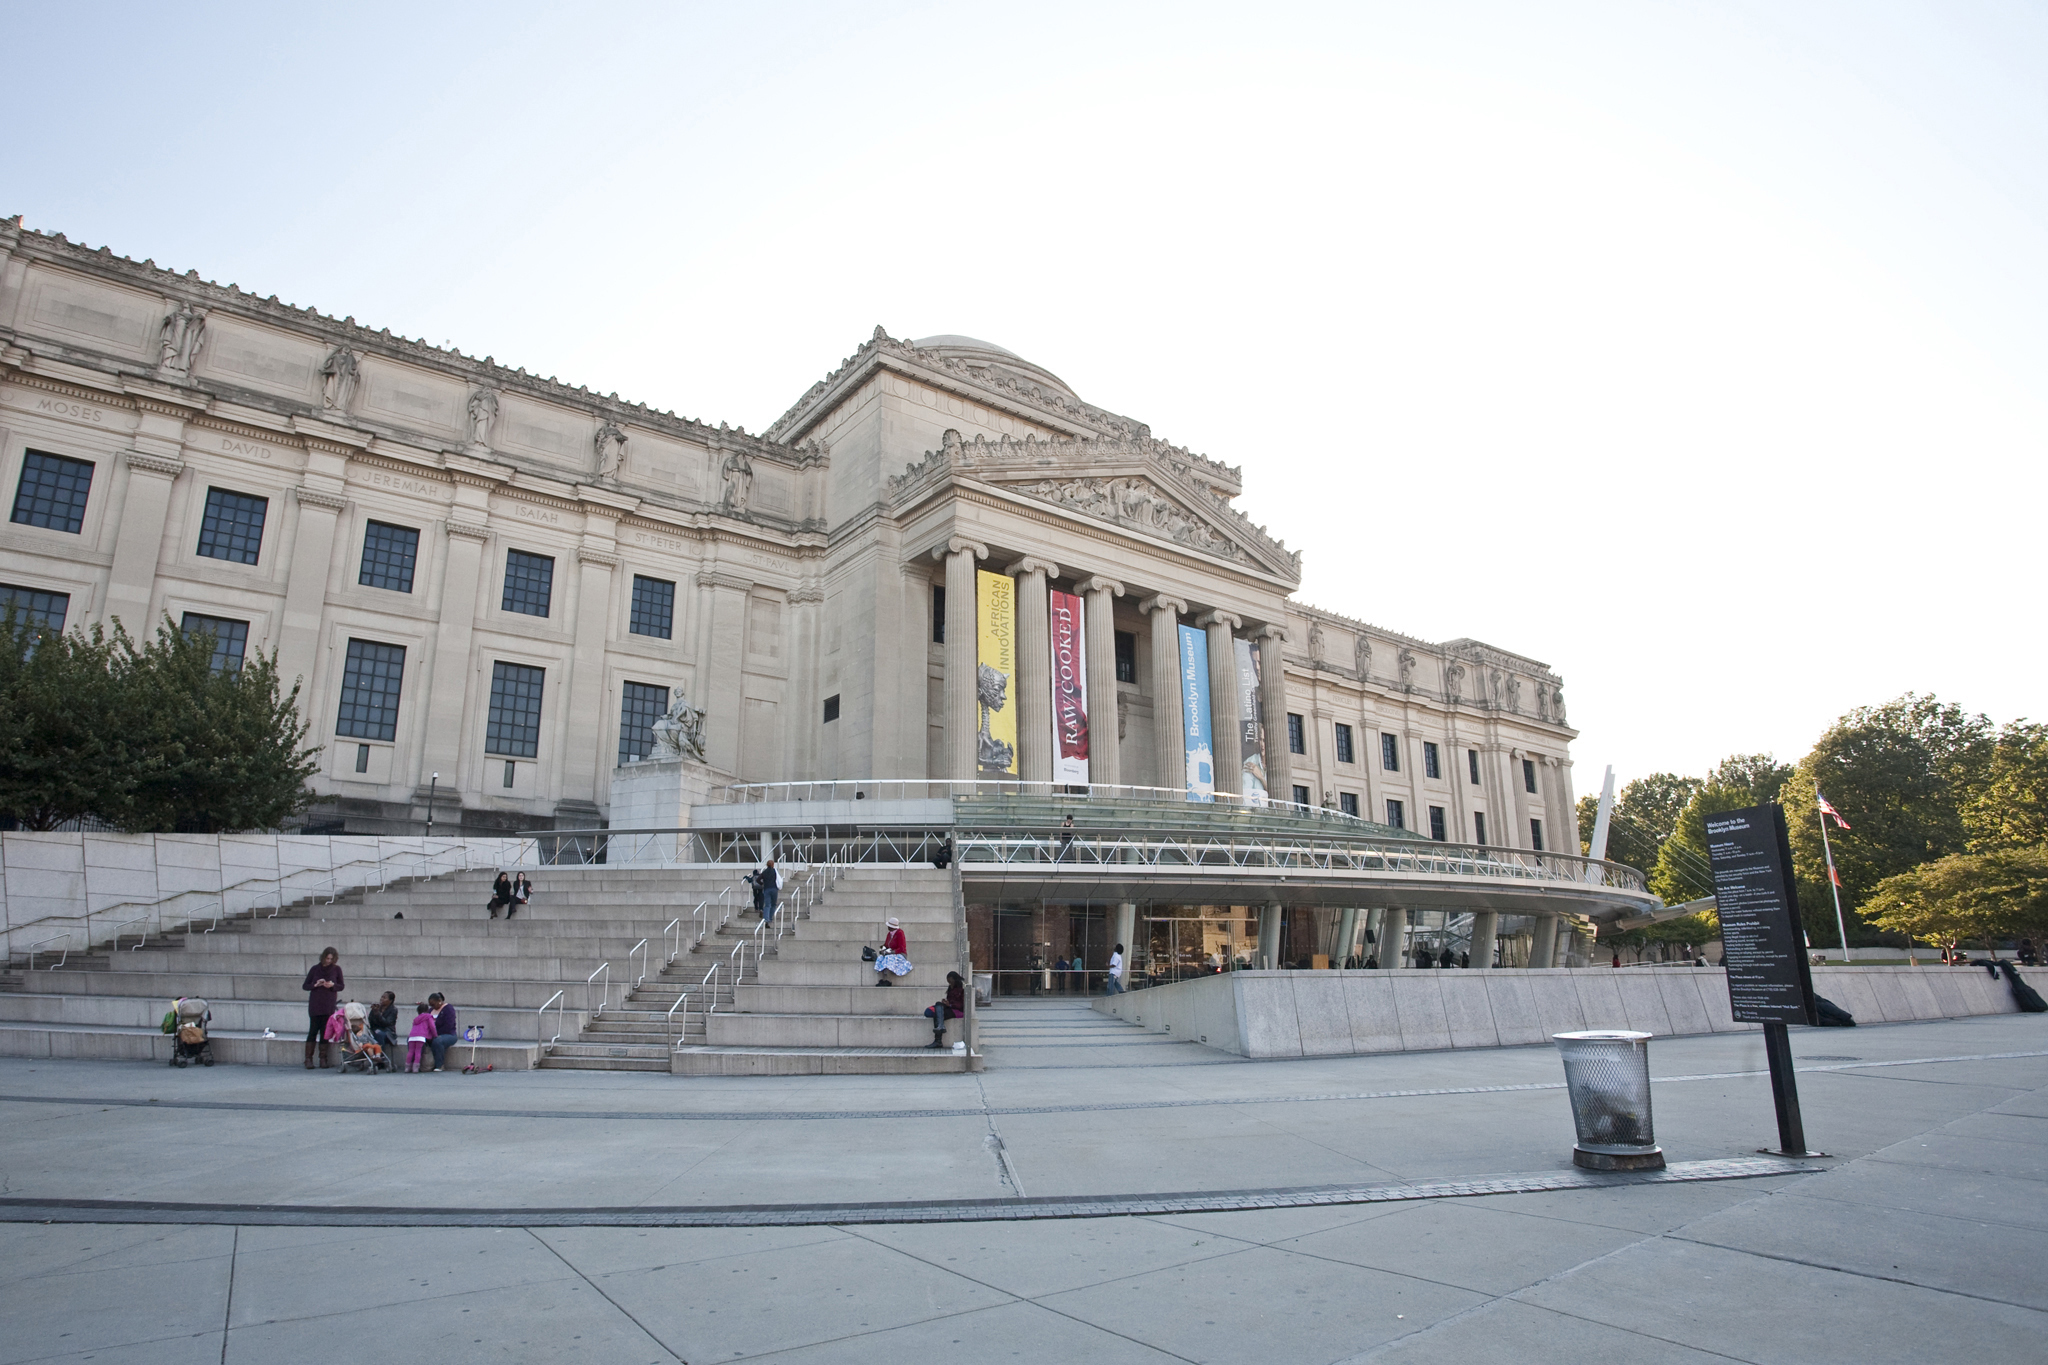 Trip to Brooklyn Museum